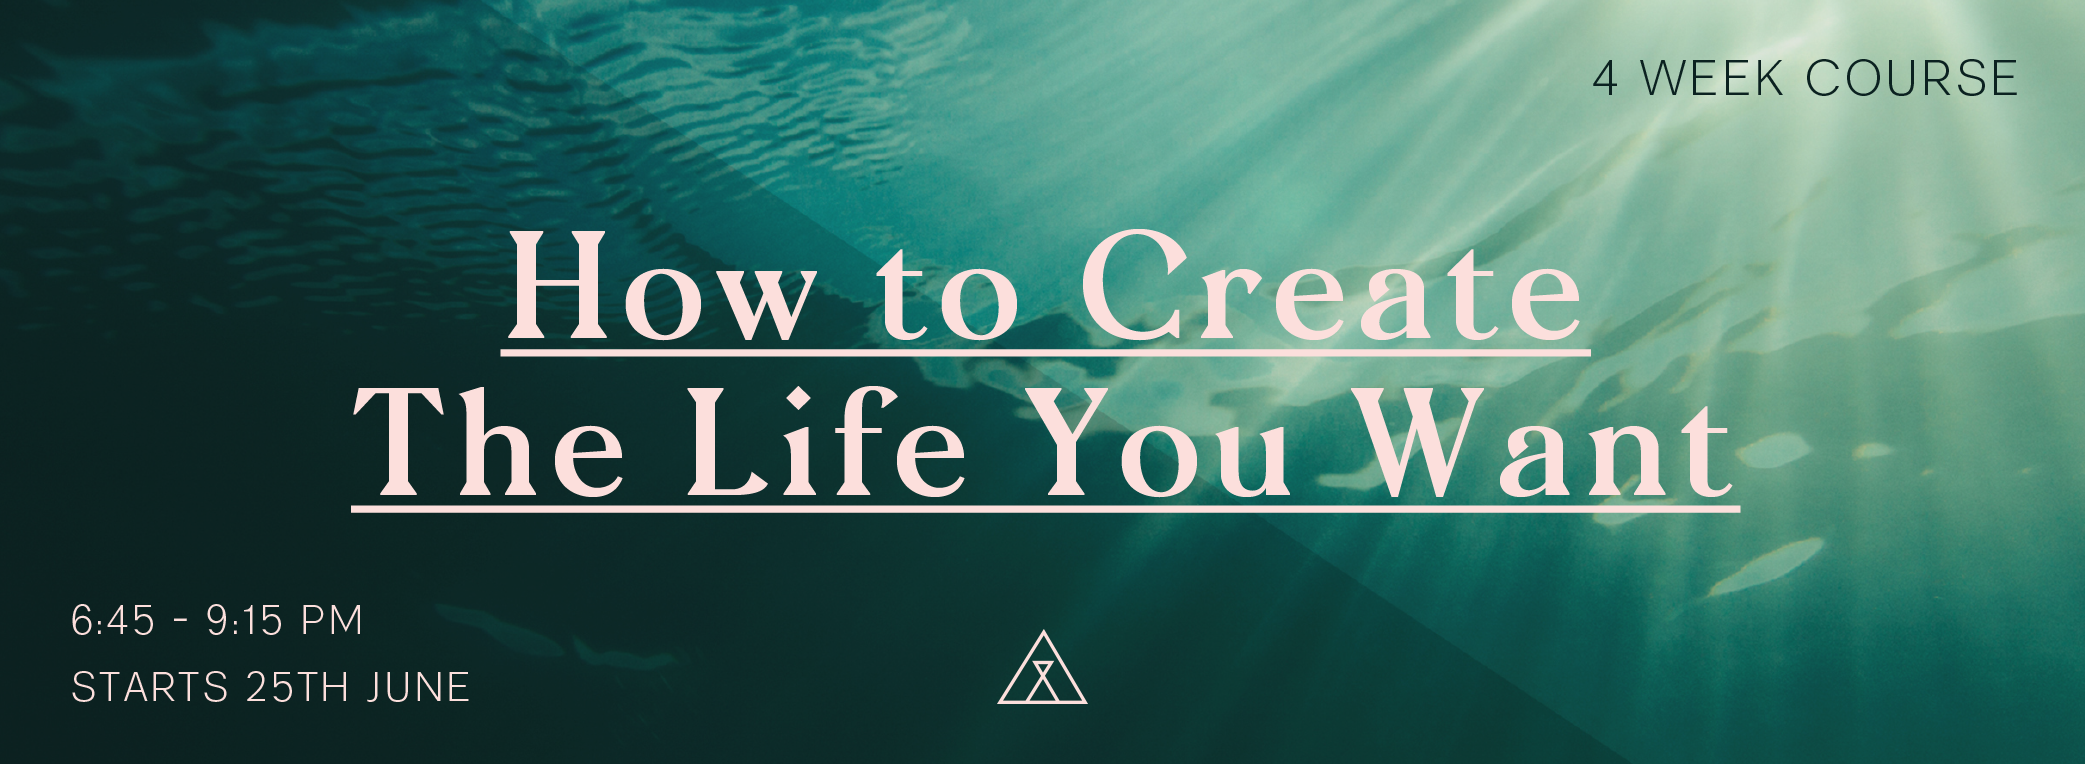 HOW TO CREATE THE LIFE YOU WANT_Web Header1